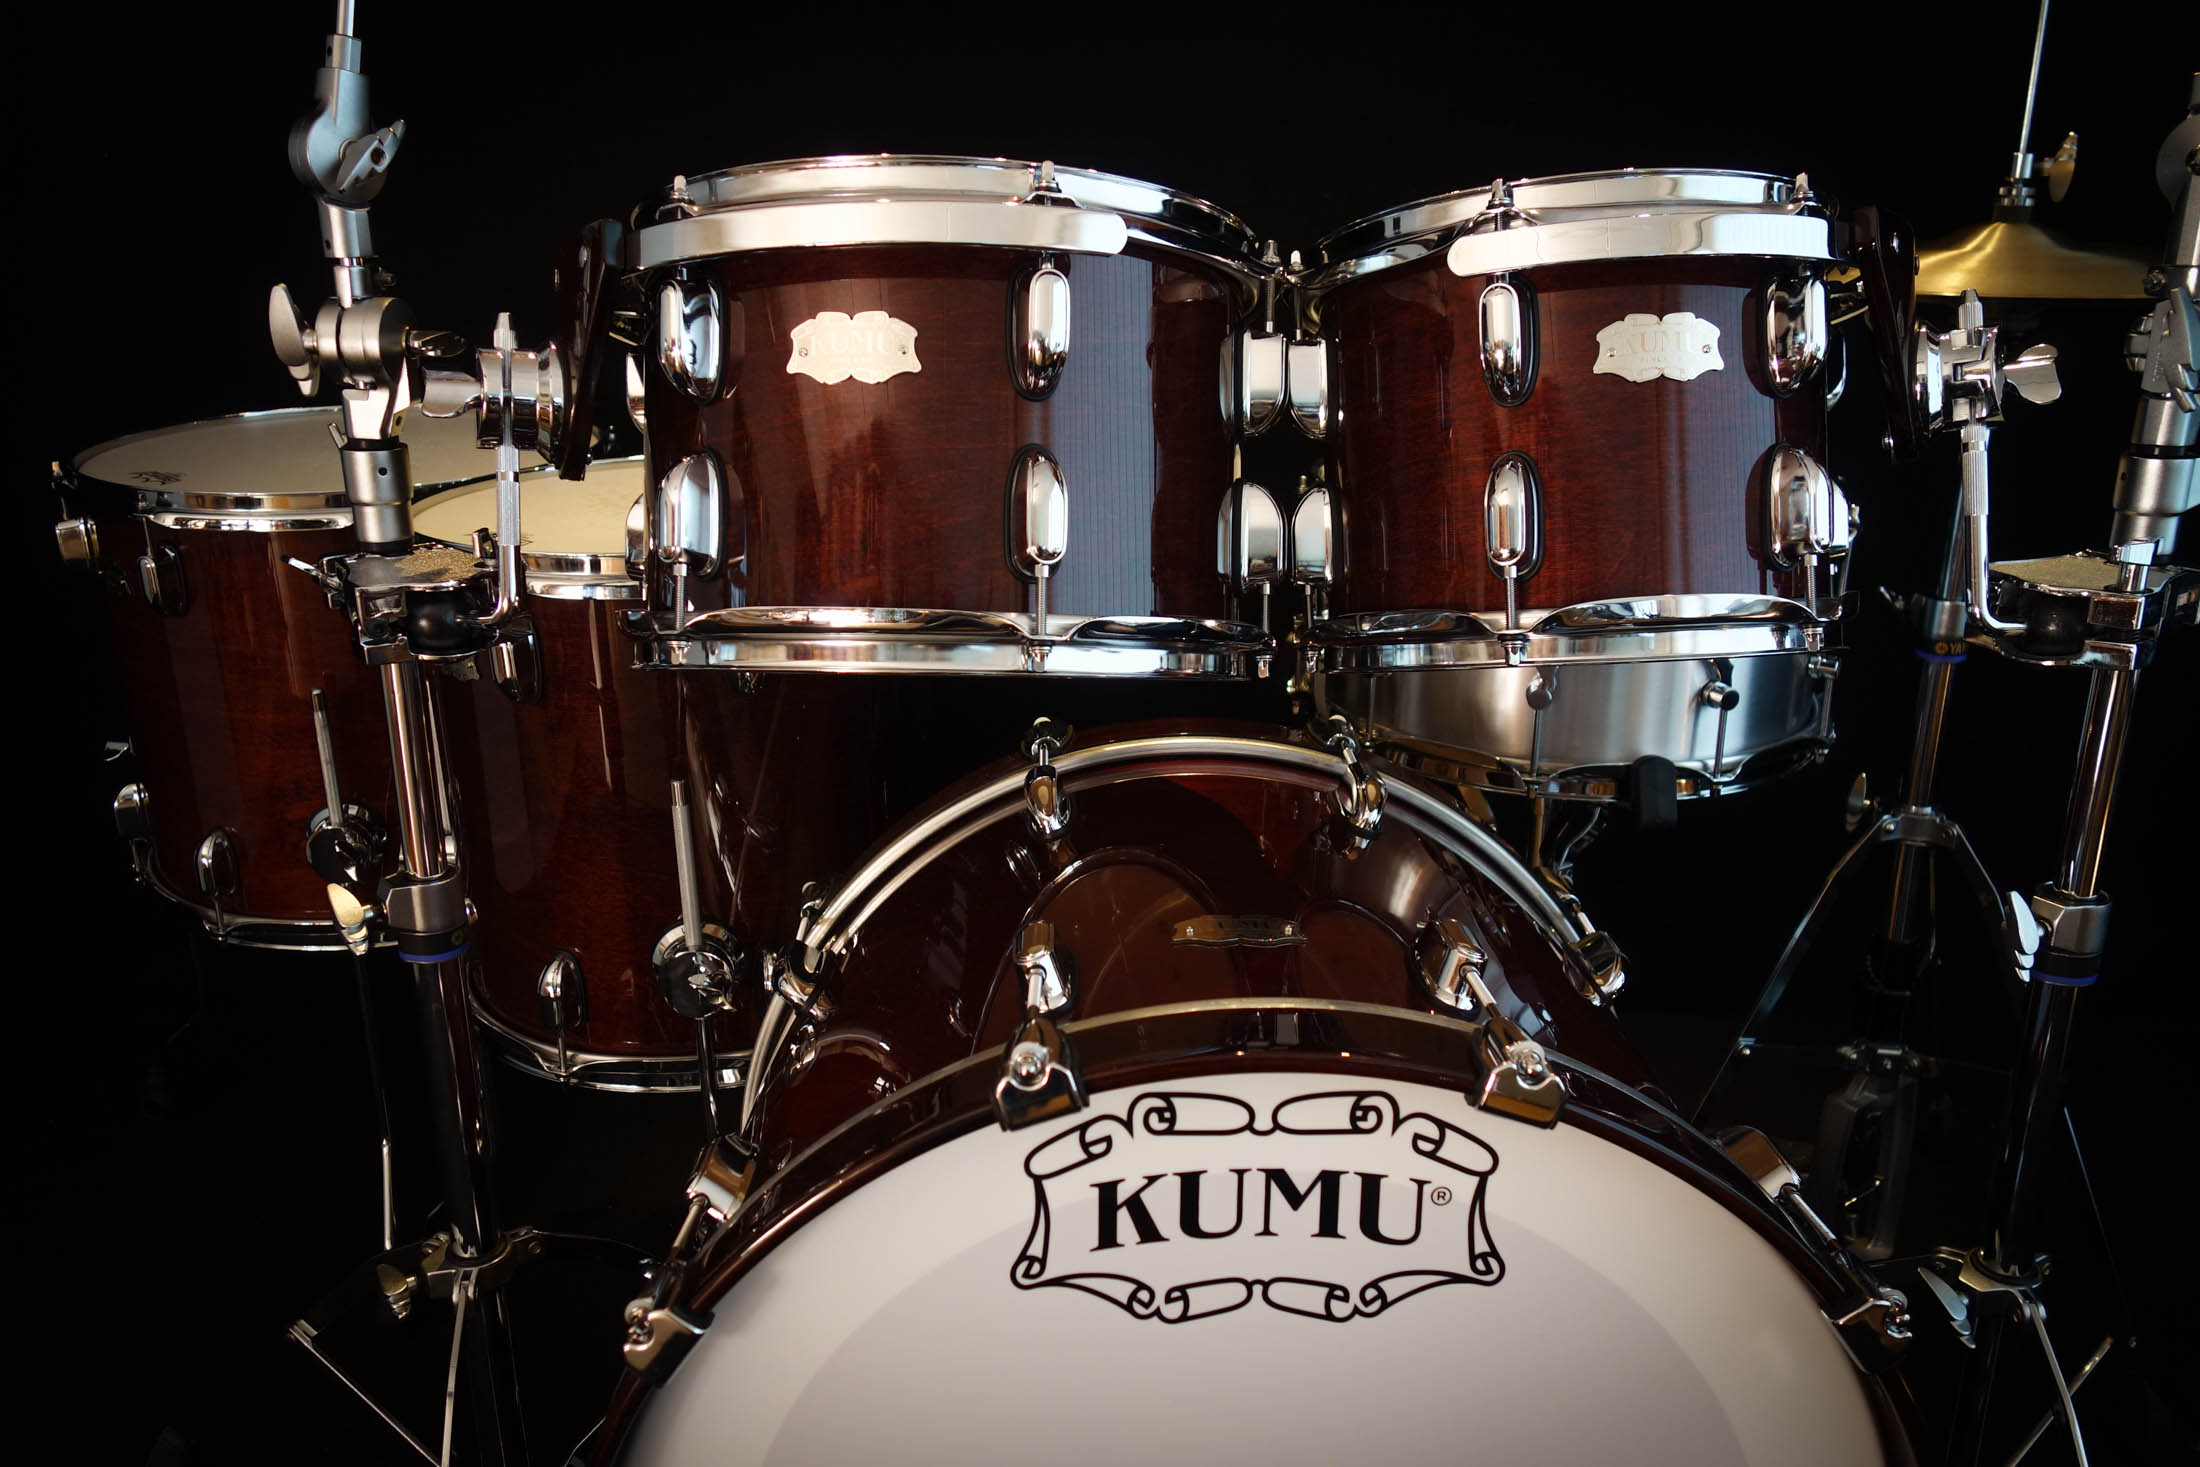 Drum Sets - Kumu Drums